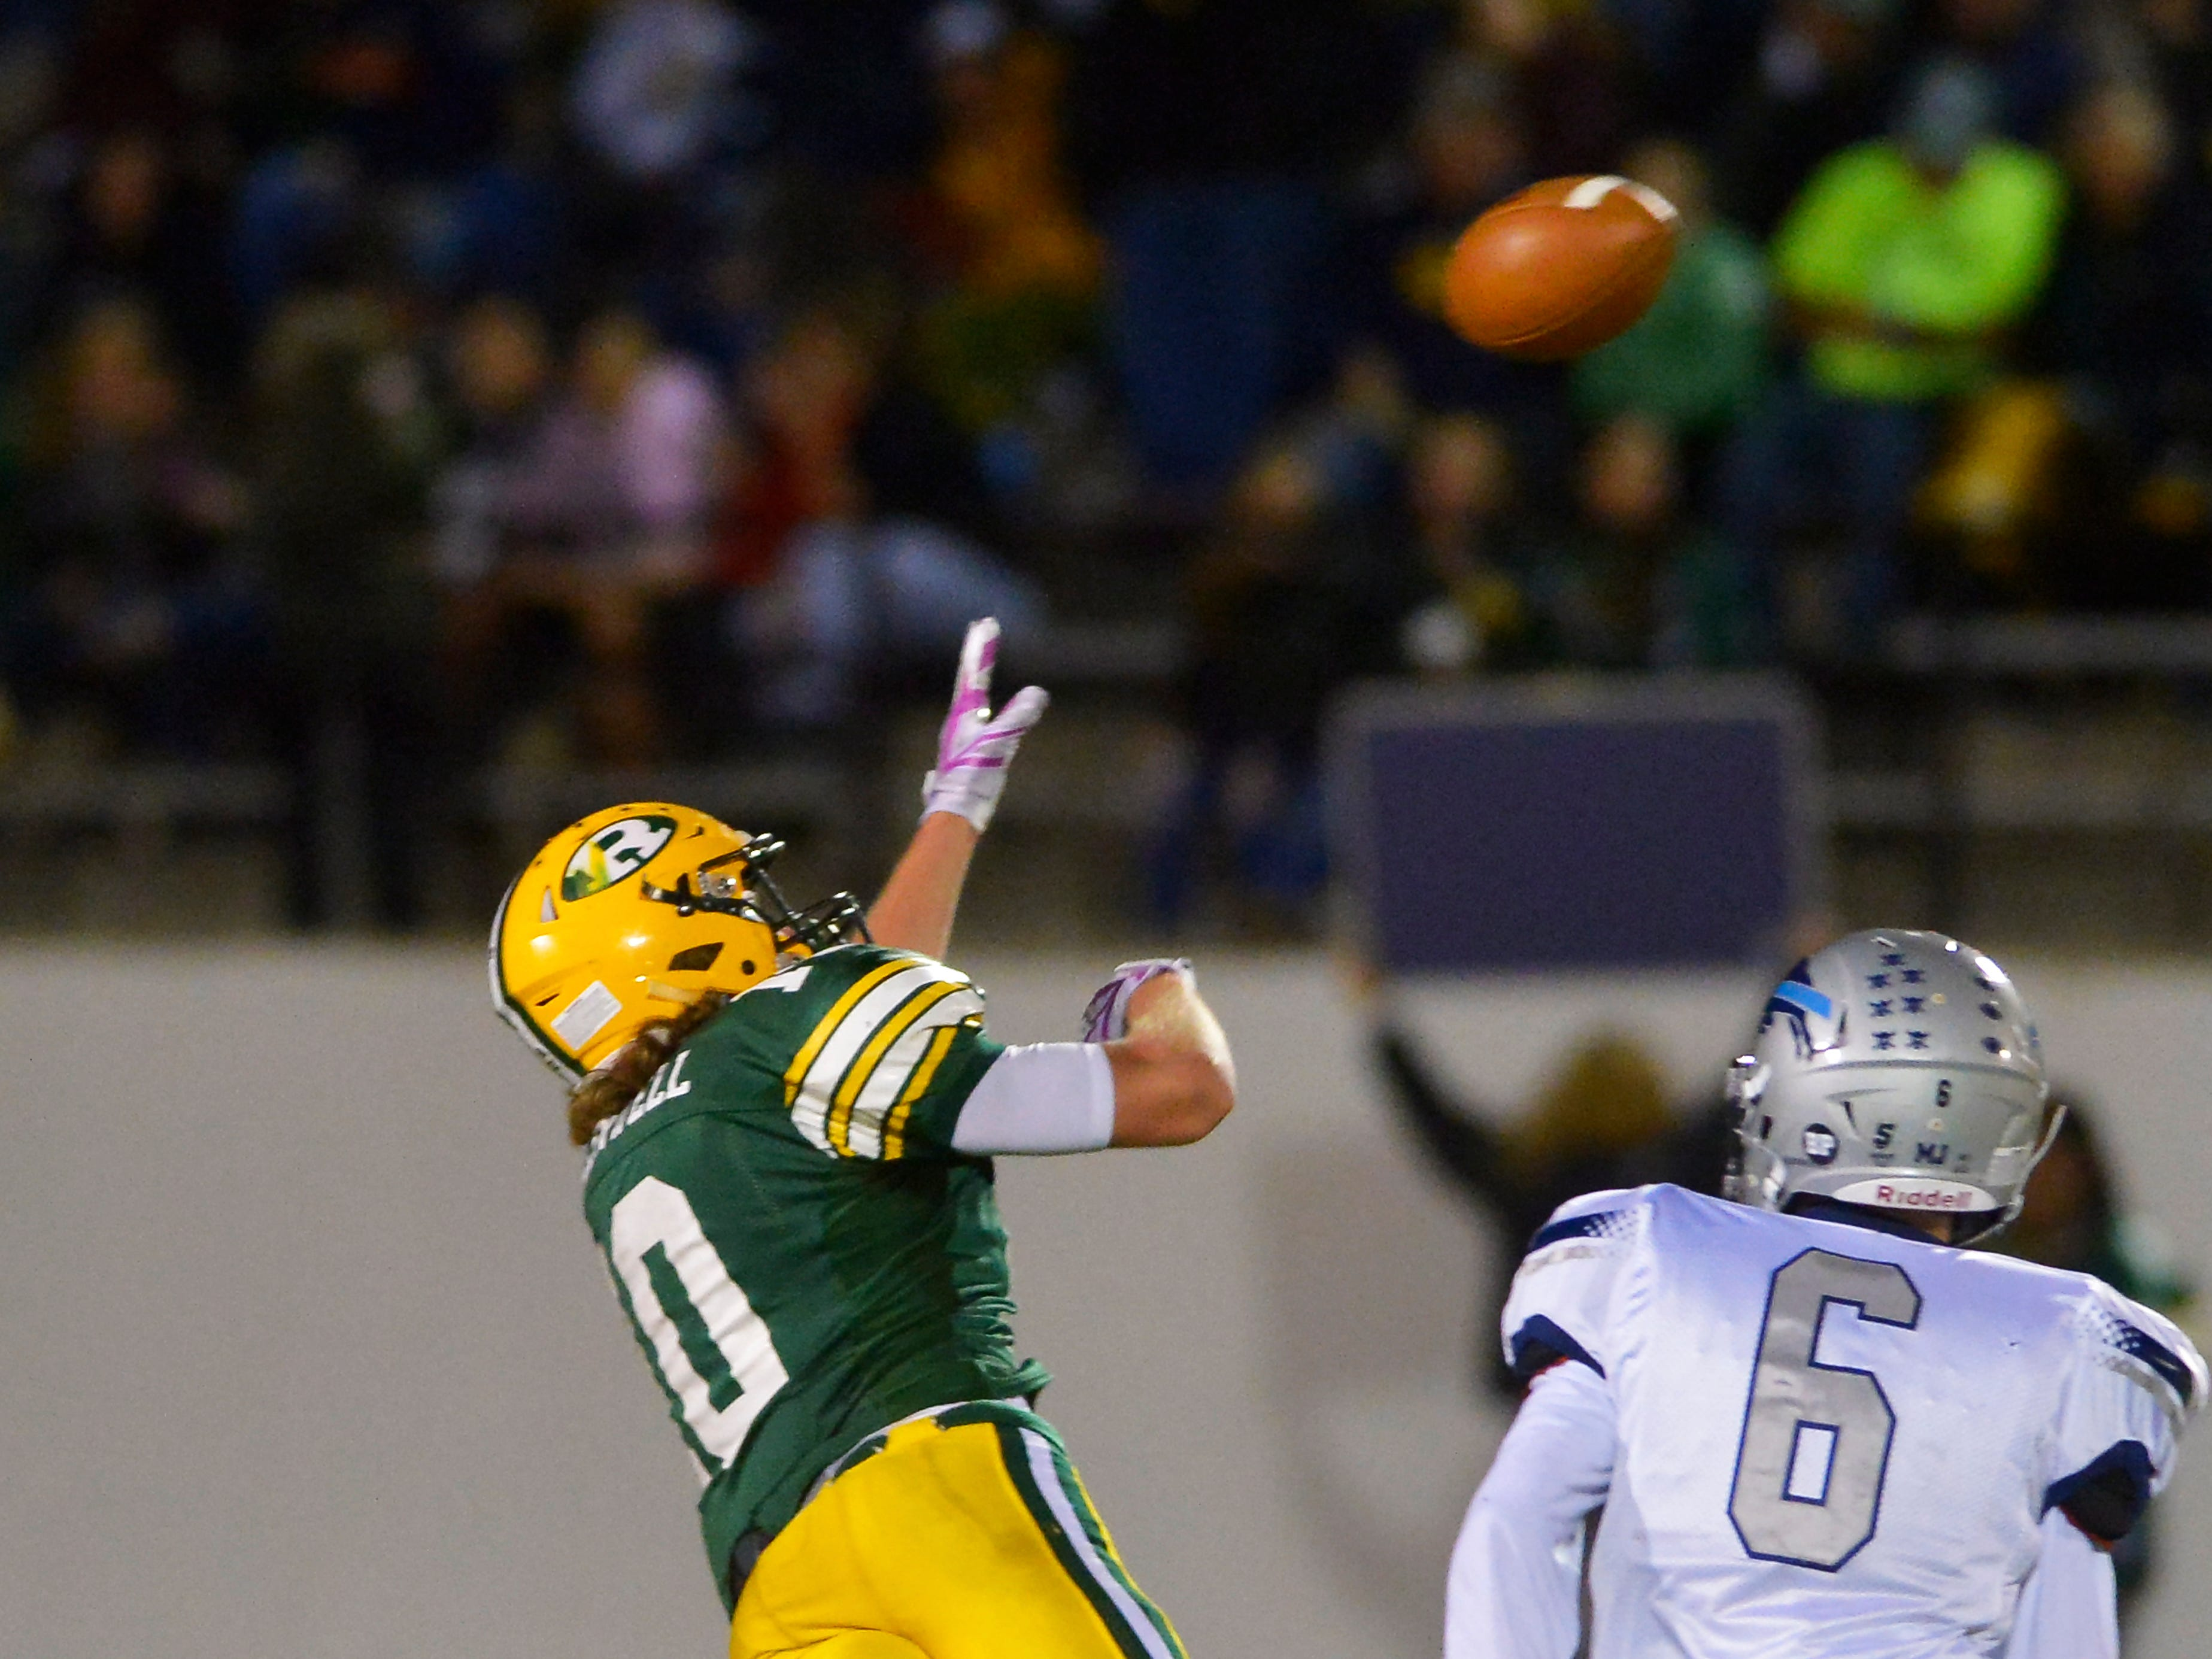 CMR's Tucker Greenwell lays out for a pass during the crosstown football game between Great Falls High and CMR on Friday night at Memorial Stadium.